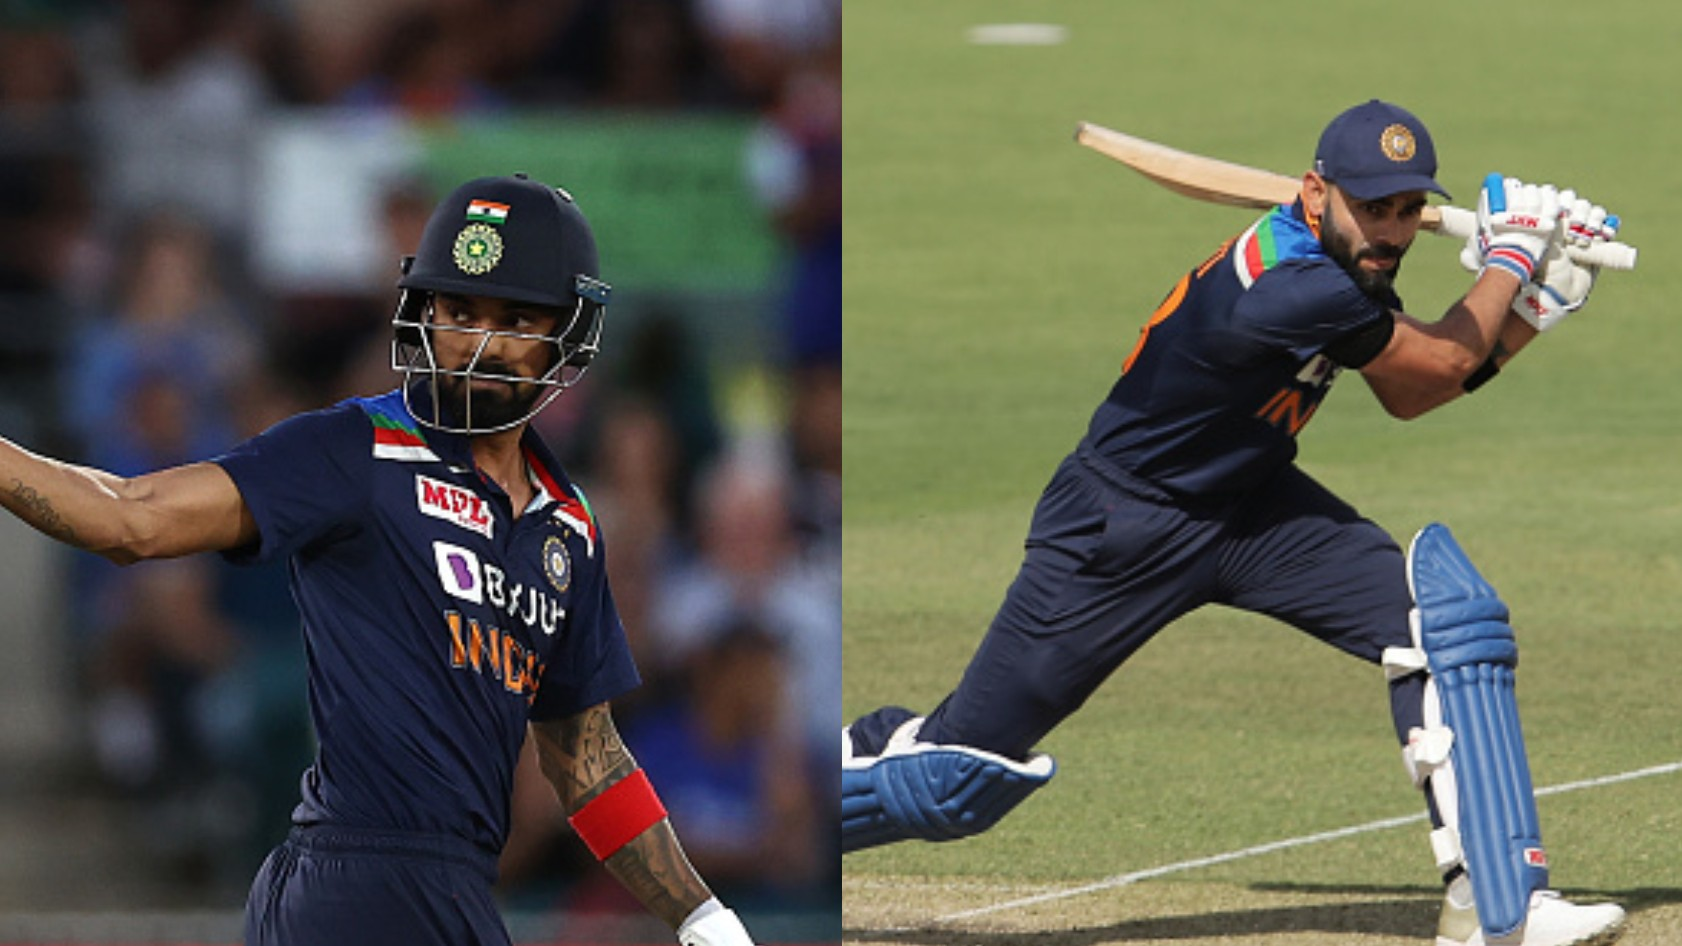 KL Rahul becomes no.3 ranked T20I batsman, Virat Kohli moves one spot up after series win over Australia